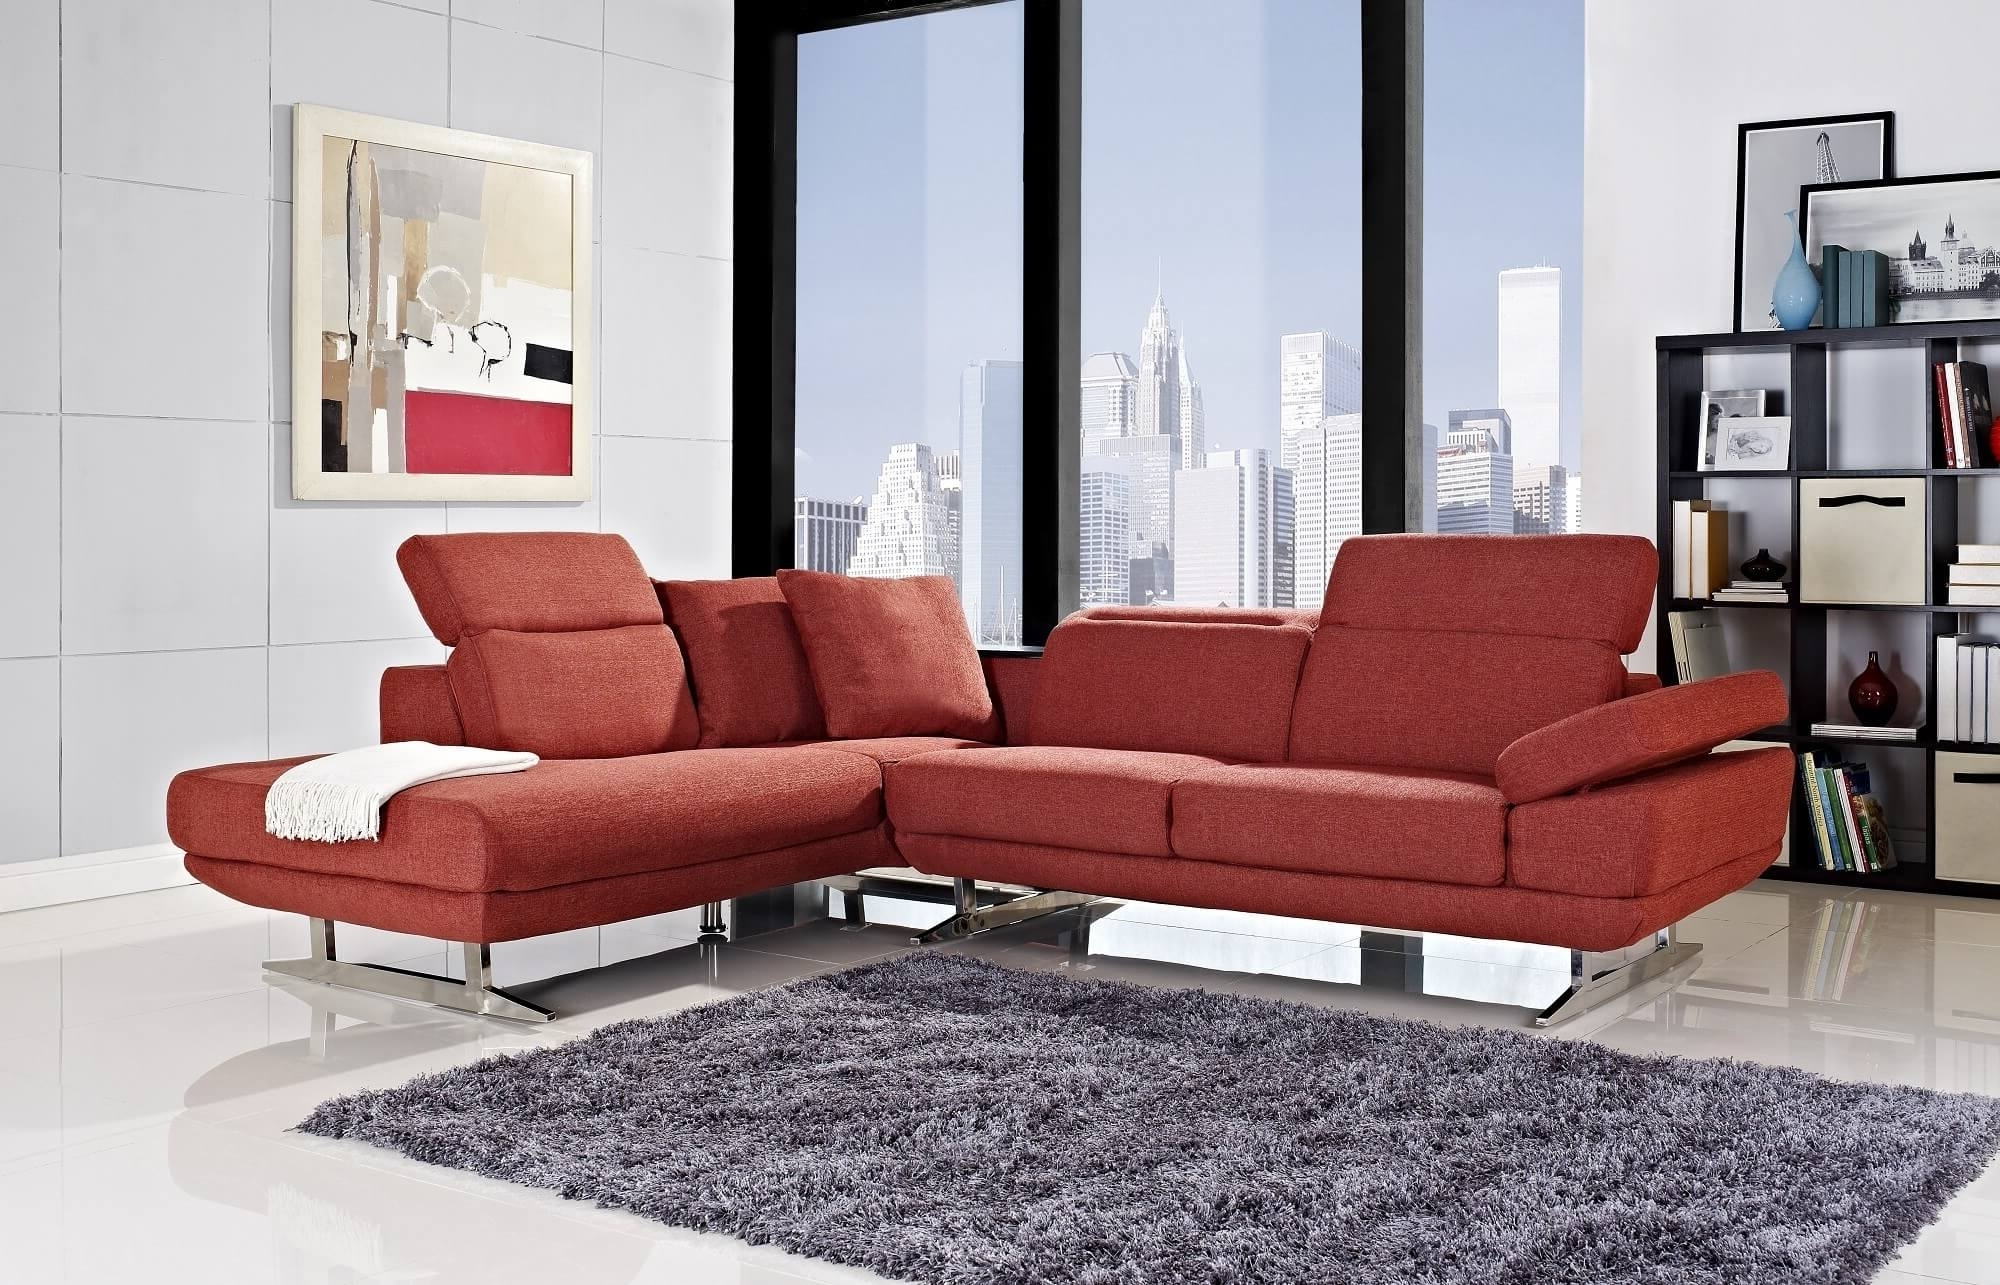 Well Known Red Faux Leather Sectionals Intended For Red Sectional Sofa. Red Faux Leather Sectional Sofa (View 15 of 15)